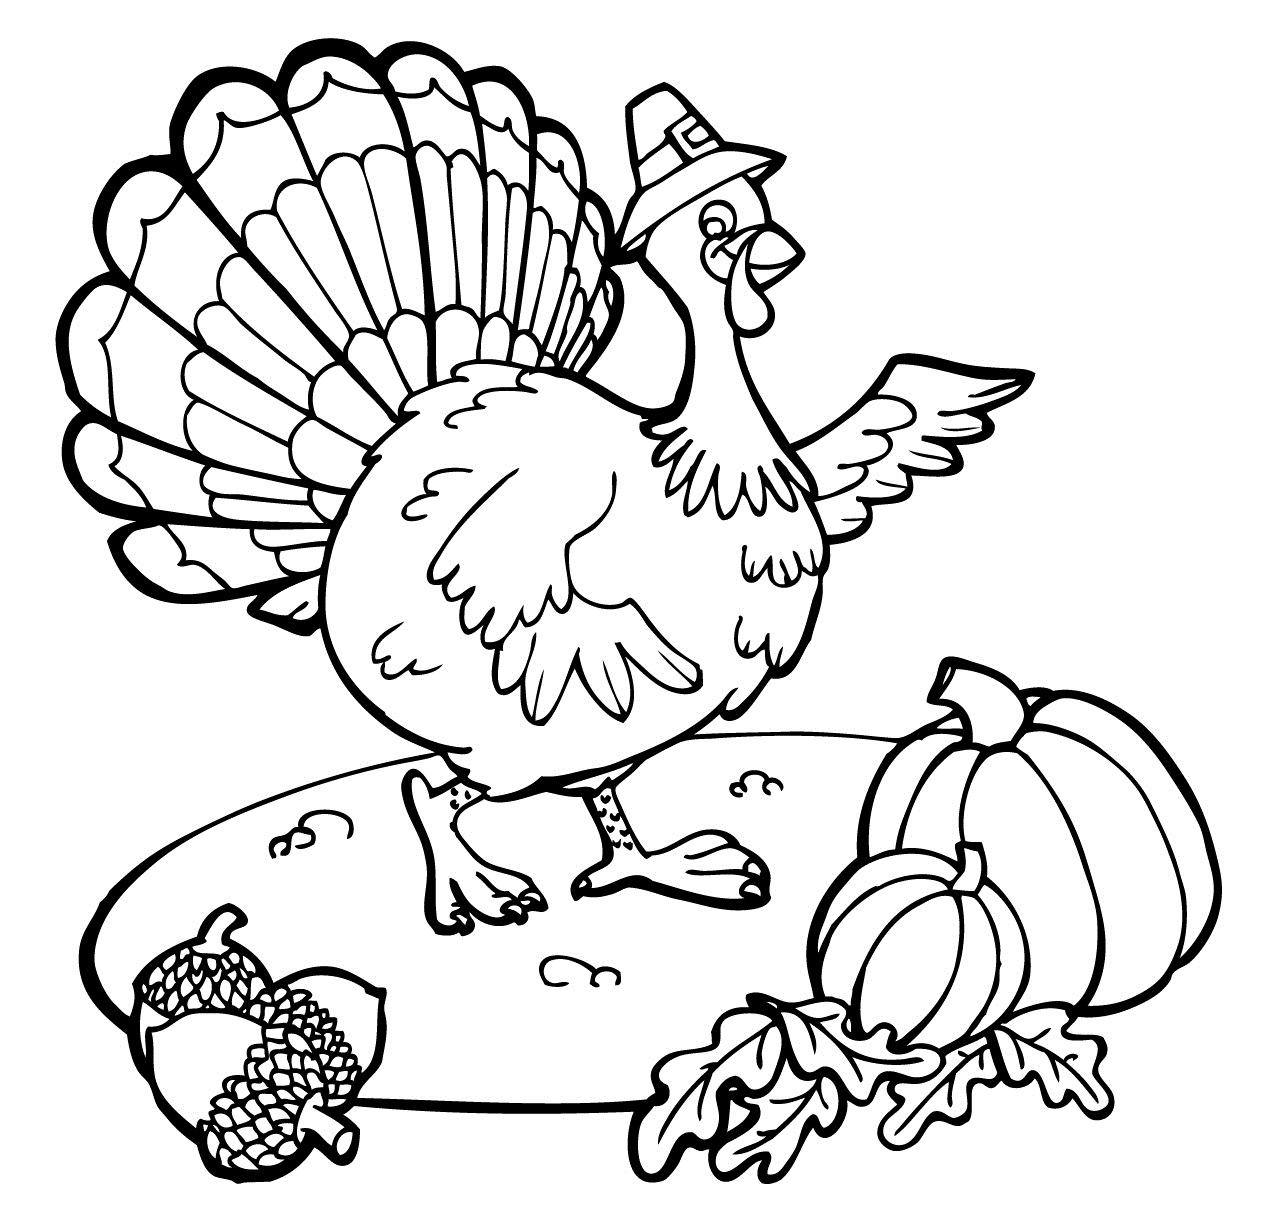 Thanksgiving Color Pages to Print 3161 1405—986 to Print Of Leaf Coloring Pages for Preschool Gallery